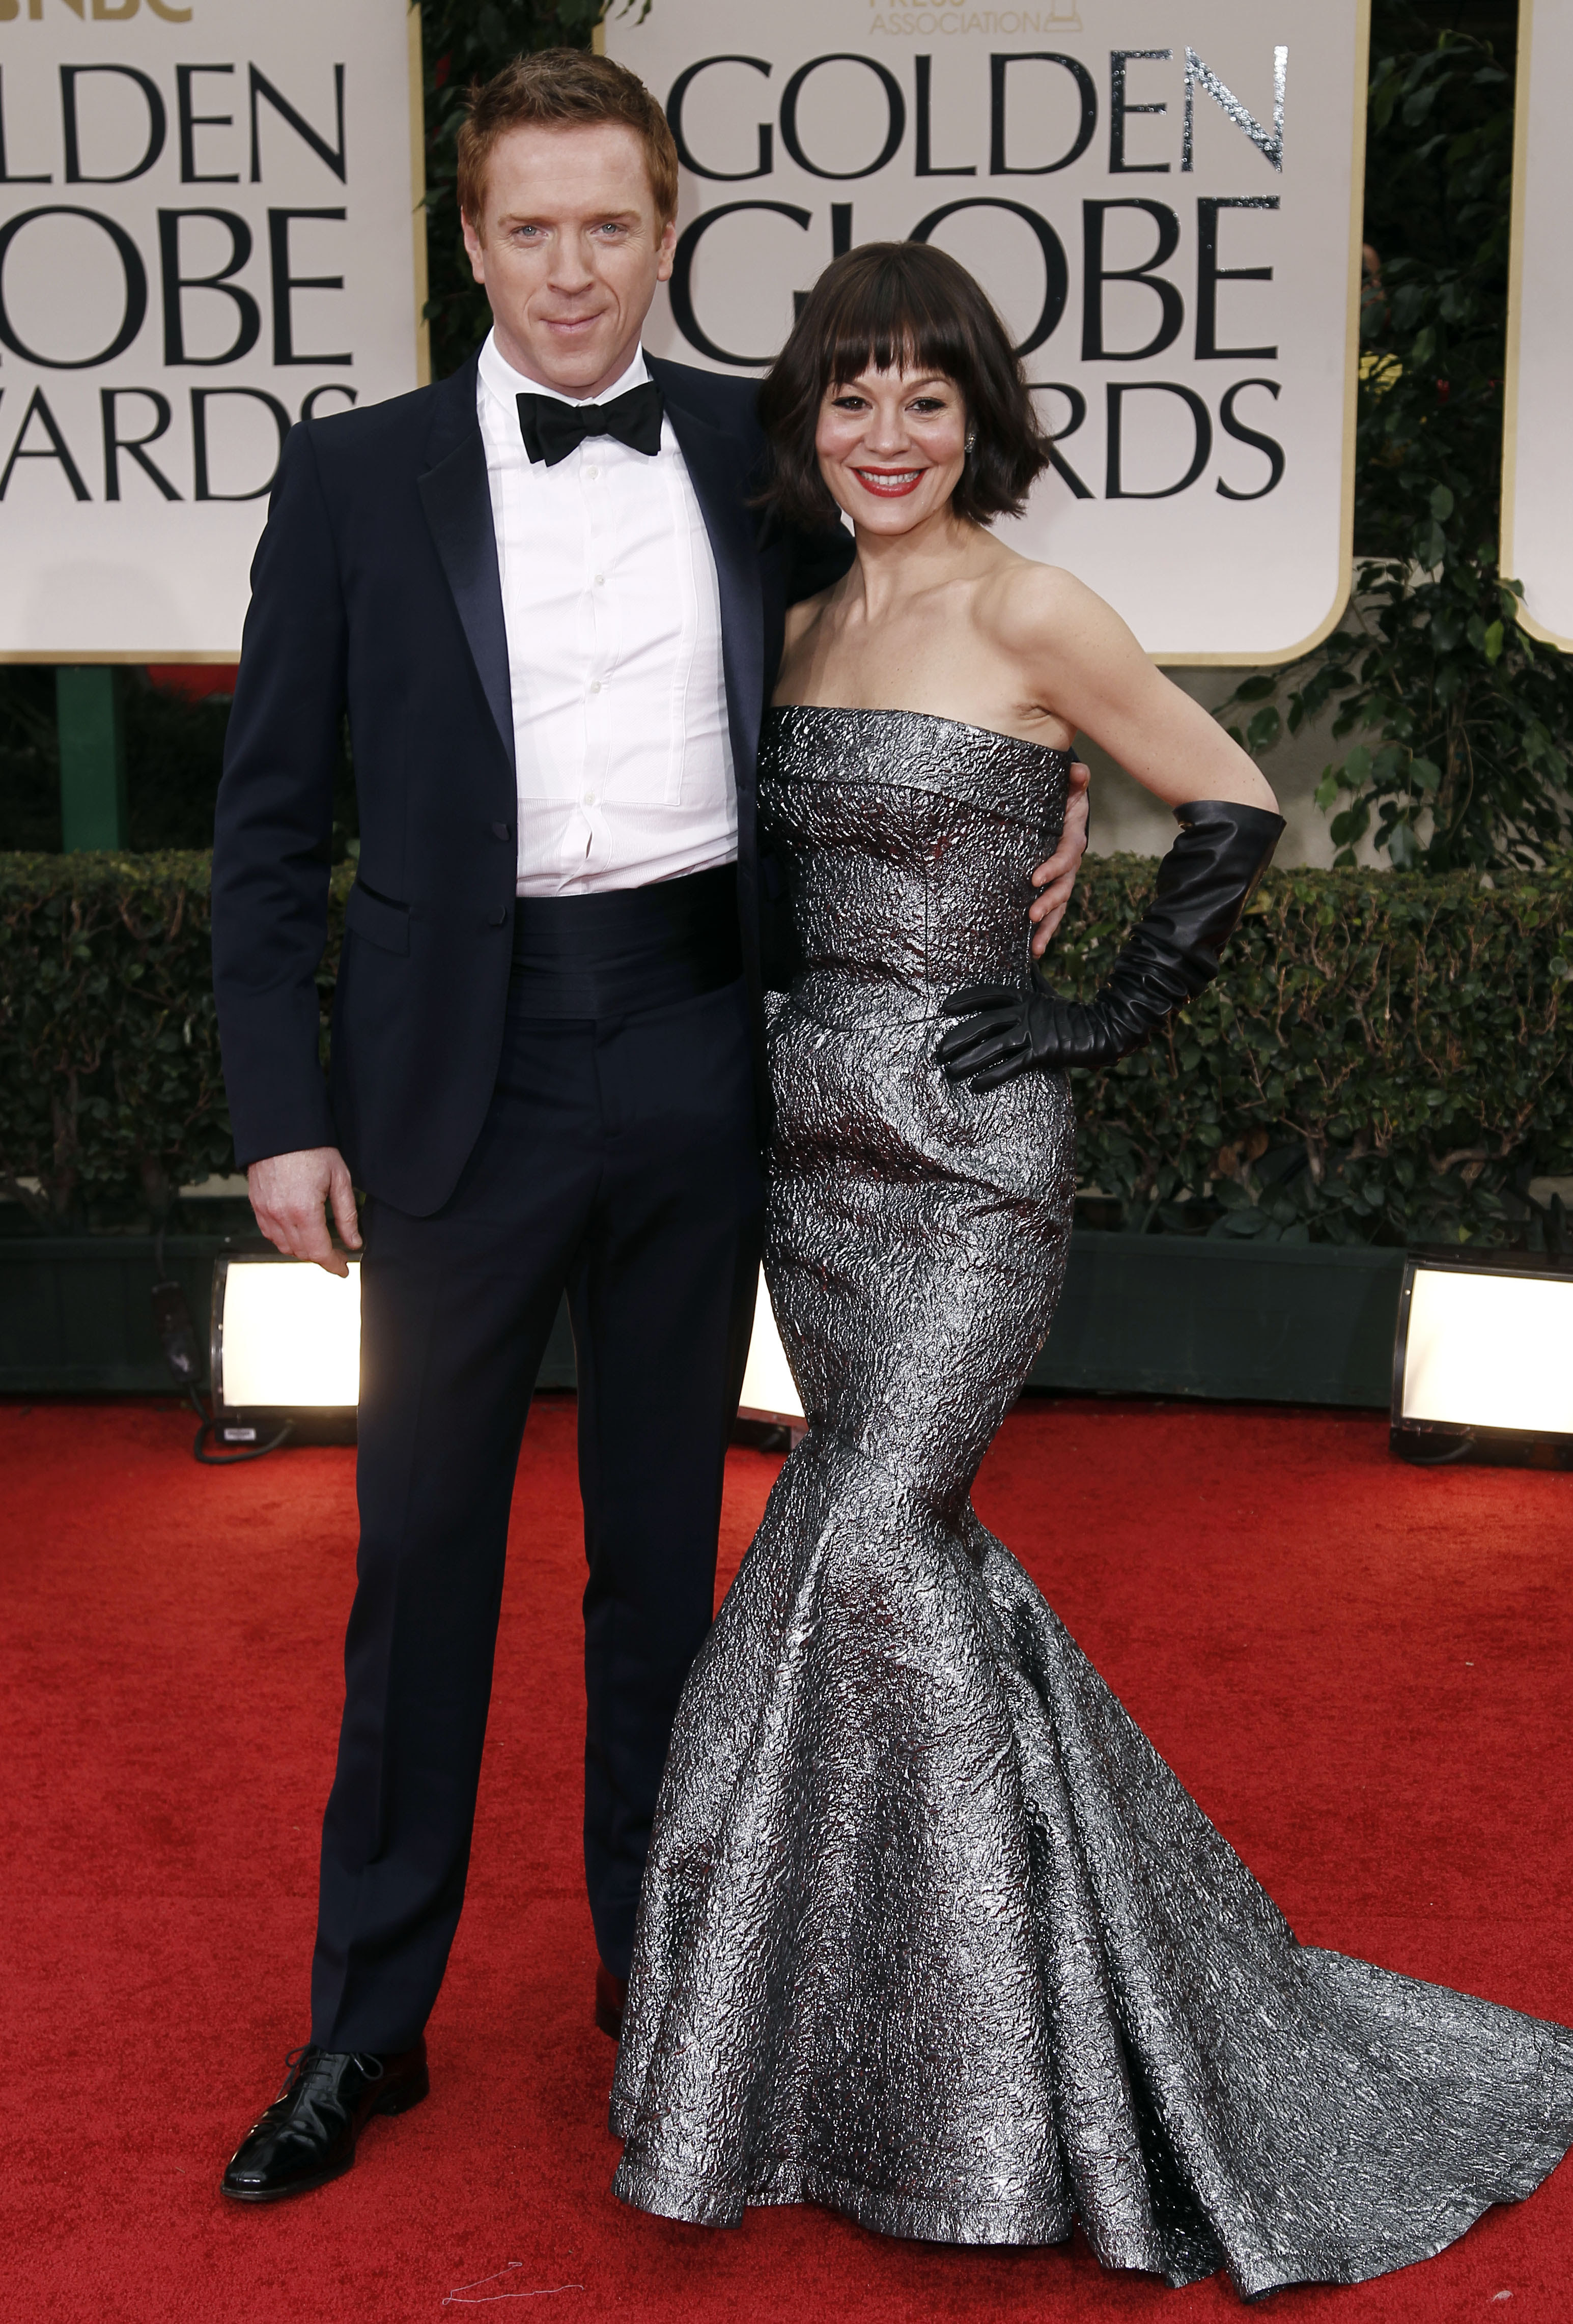 Awesome photos of Helen Mccrory - Richi Galery